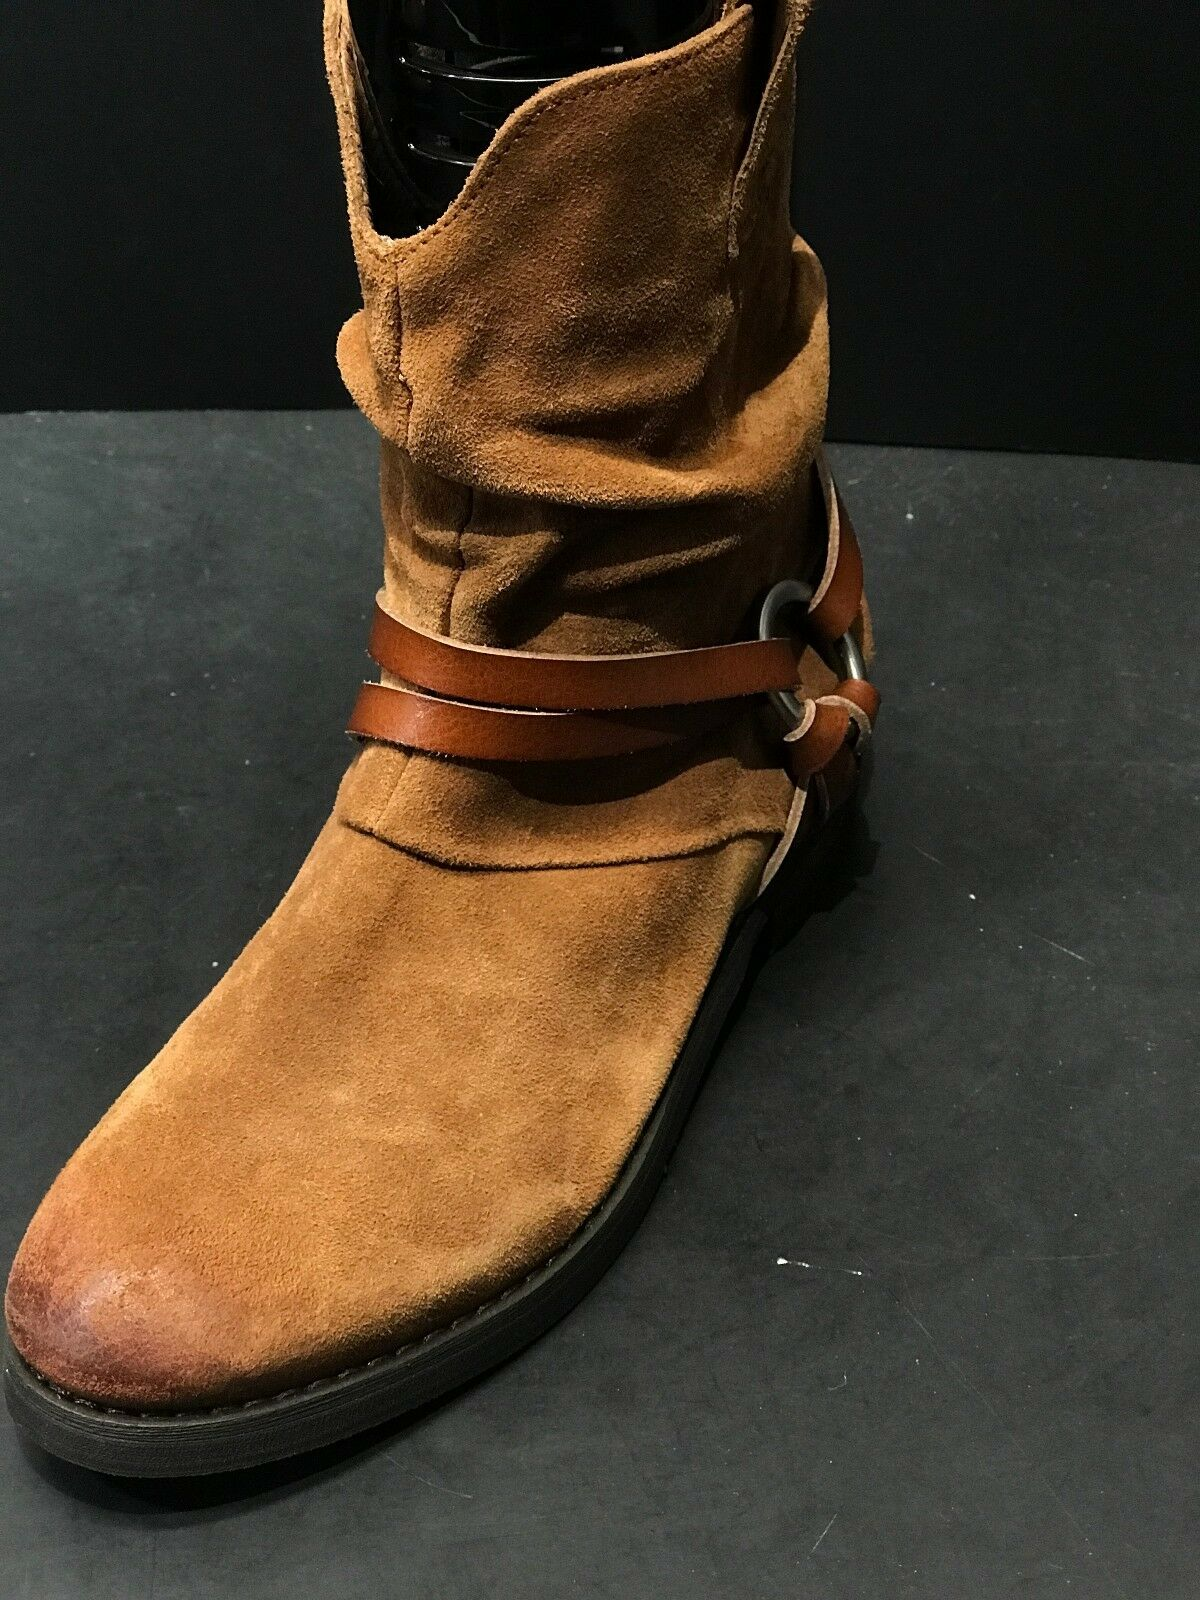 Corso Como Seaton Tan Suede Western ANKLE Women's Boots Size 7M New